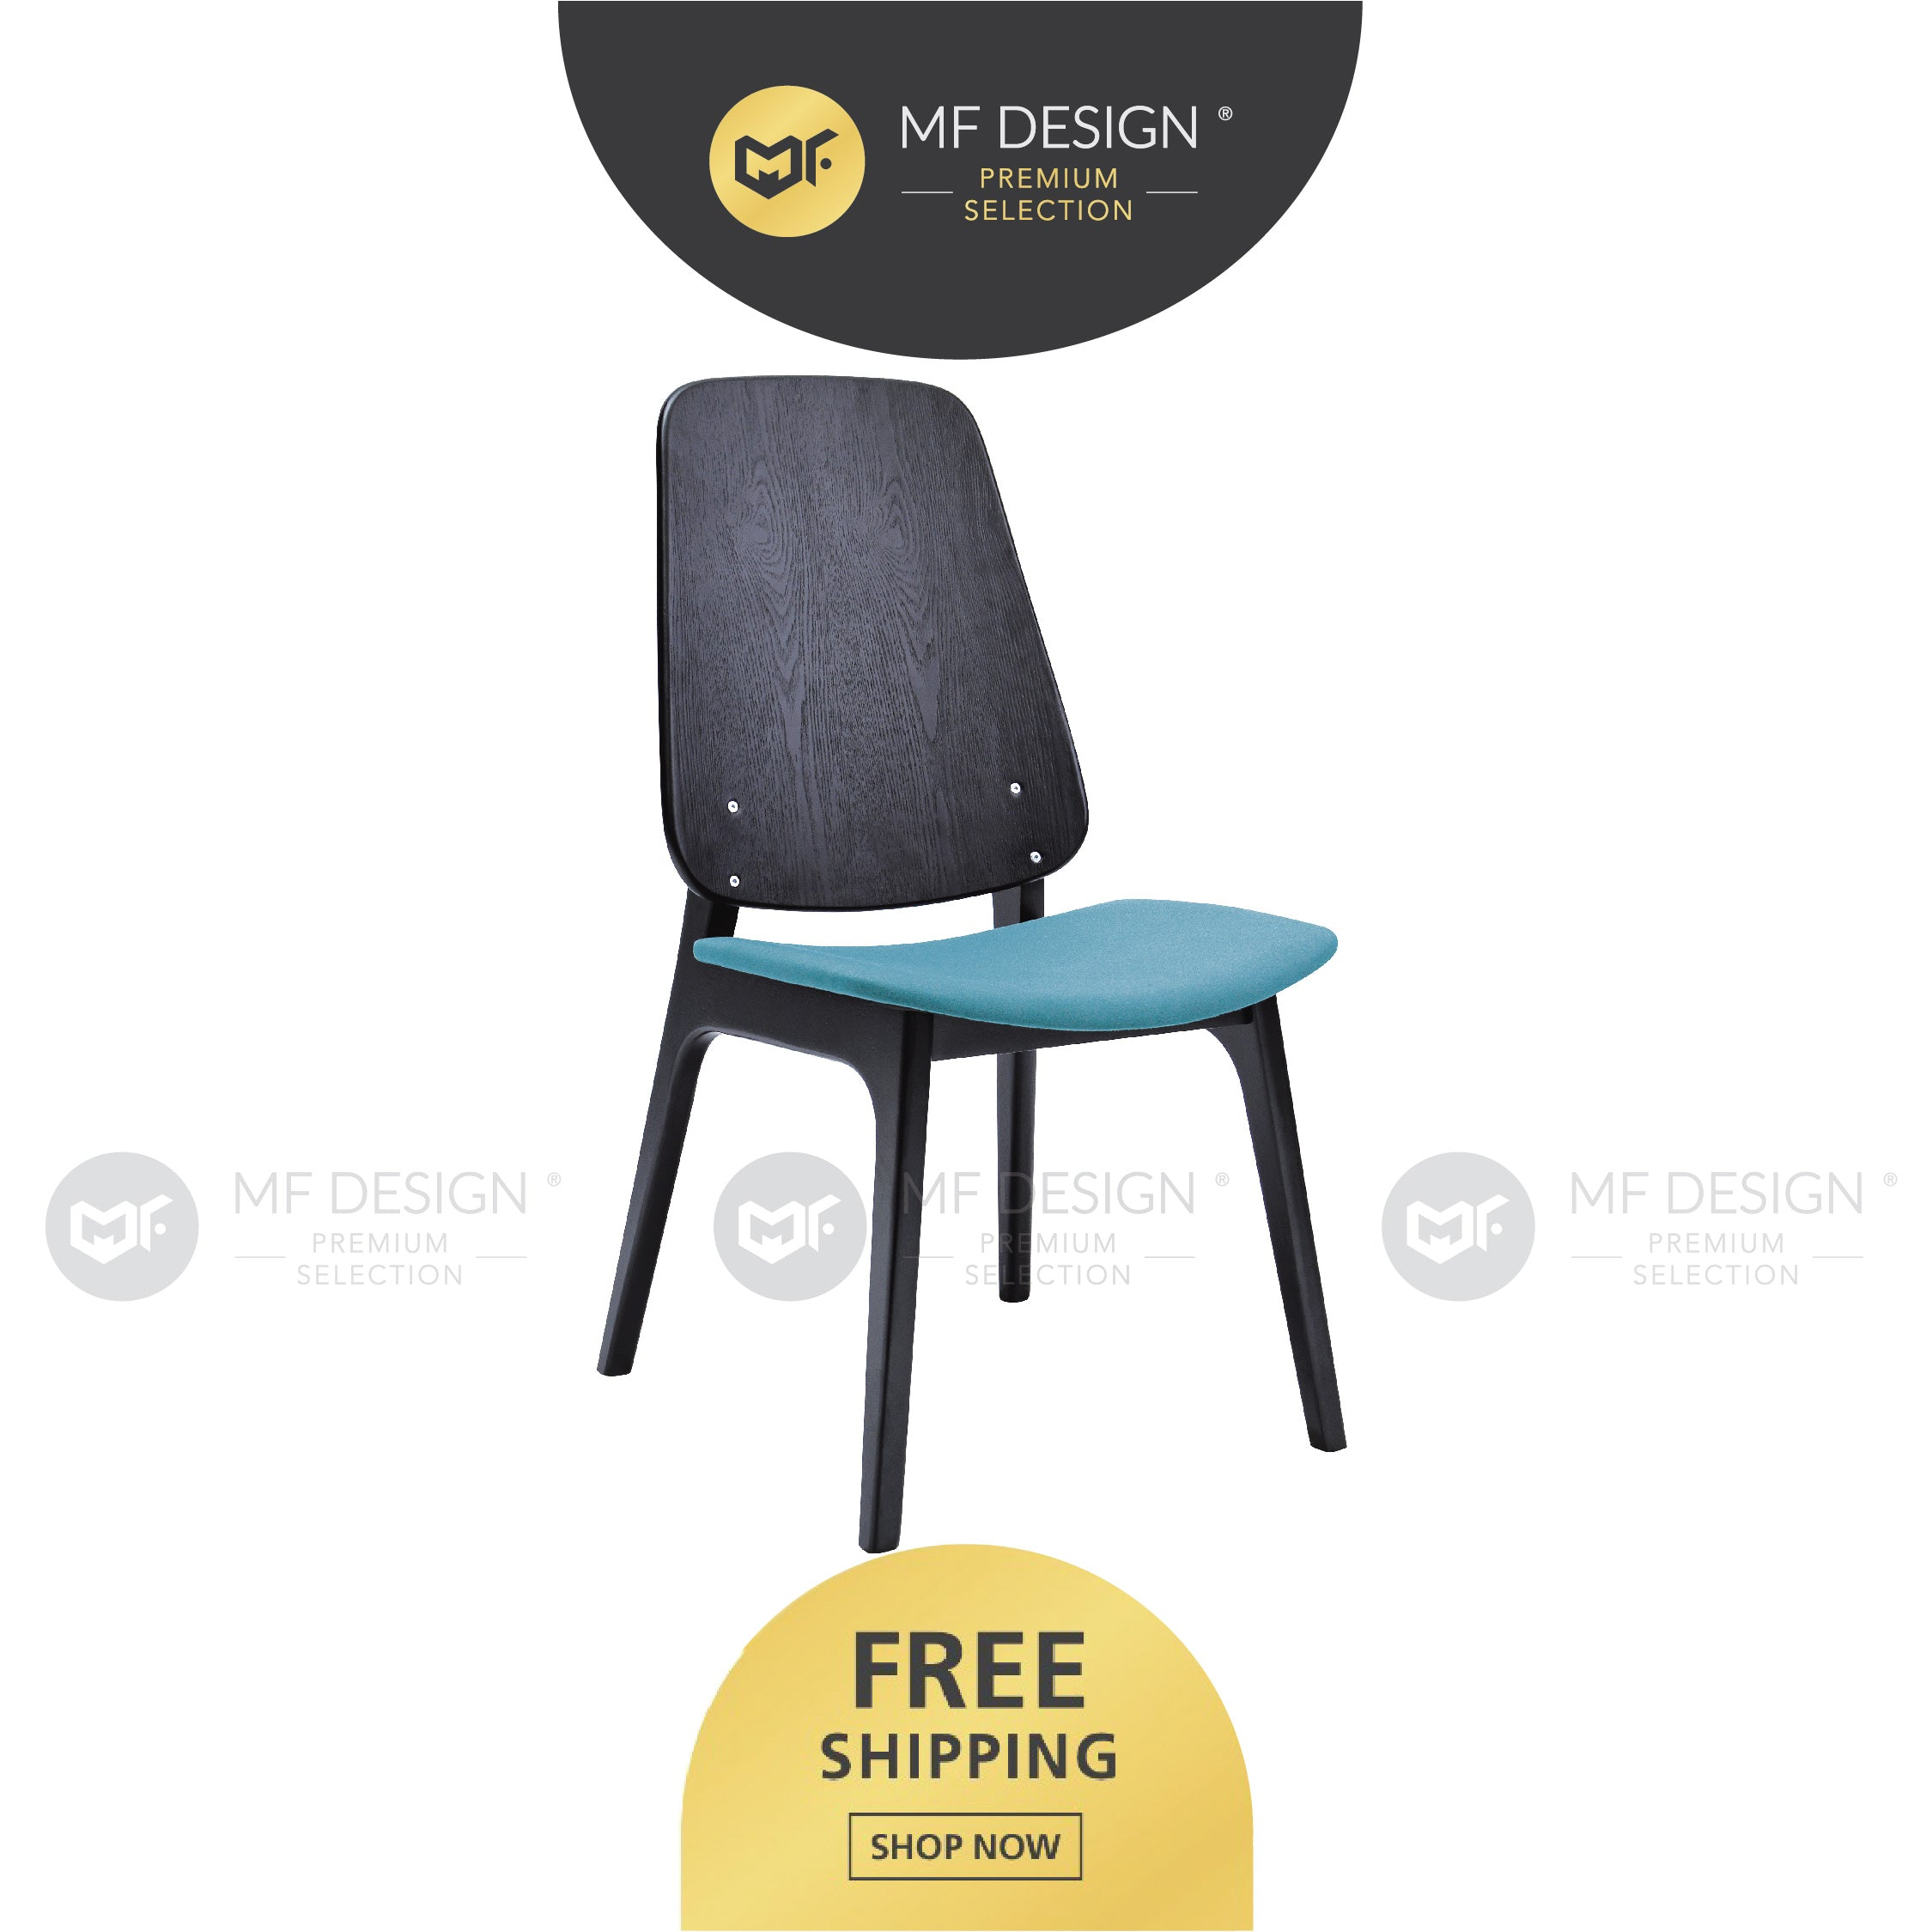 MFD Premium Marco Dining Chair/ Wooden Chair / Solid Rubber Wood / Kerusi Makan Kayu Getah / Living Room / Scandinavian